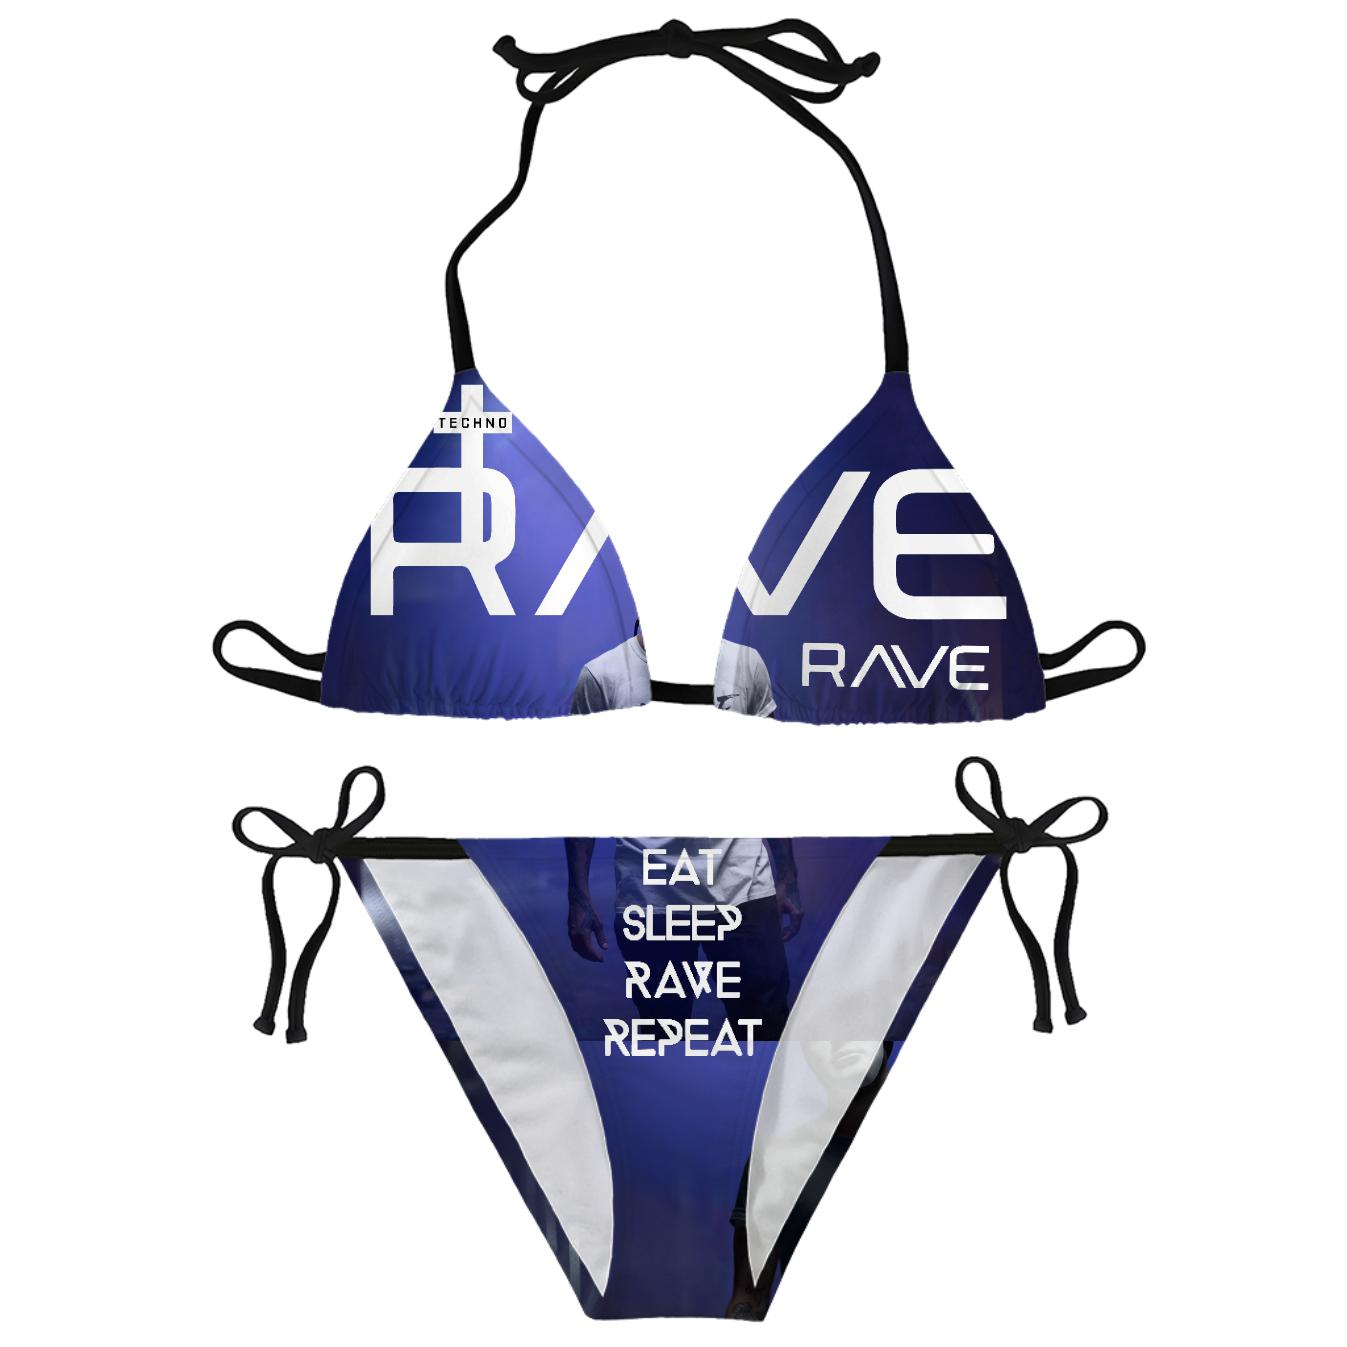 RAVE REPAT Yoda Rave On!® All-Over-360Print-Bikinis-Small-Rave-On! I www.rave-on.shop I Deine Rave & Techno Szene Shop I RageOn Connect, rspid4732066922584 - Sexy Festival Streetwear , Clubwear & Raver Style